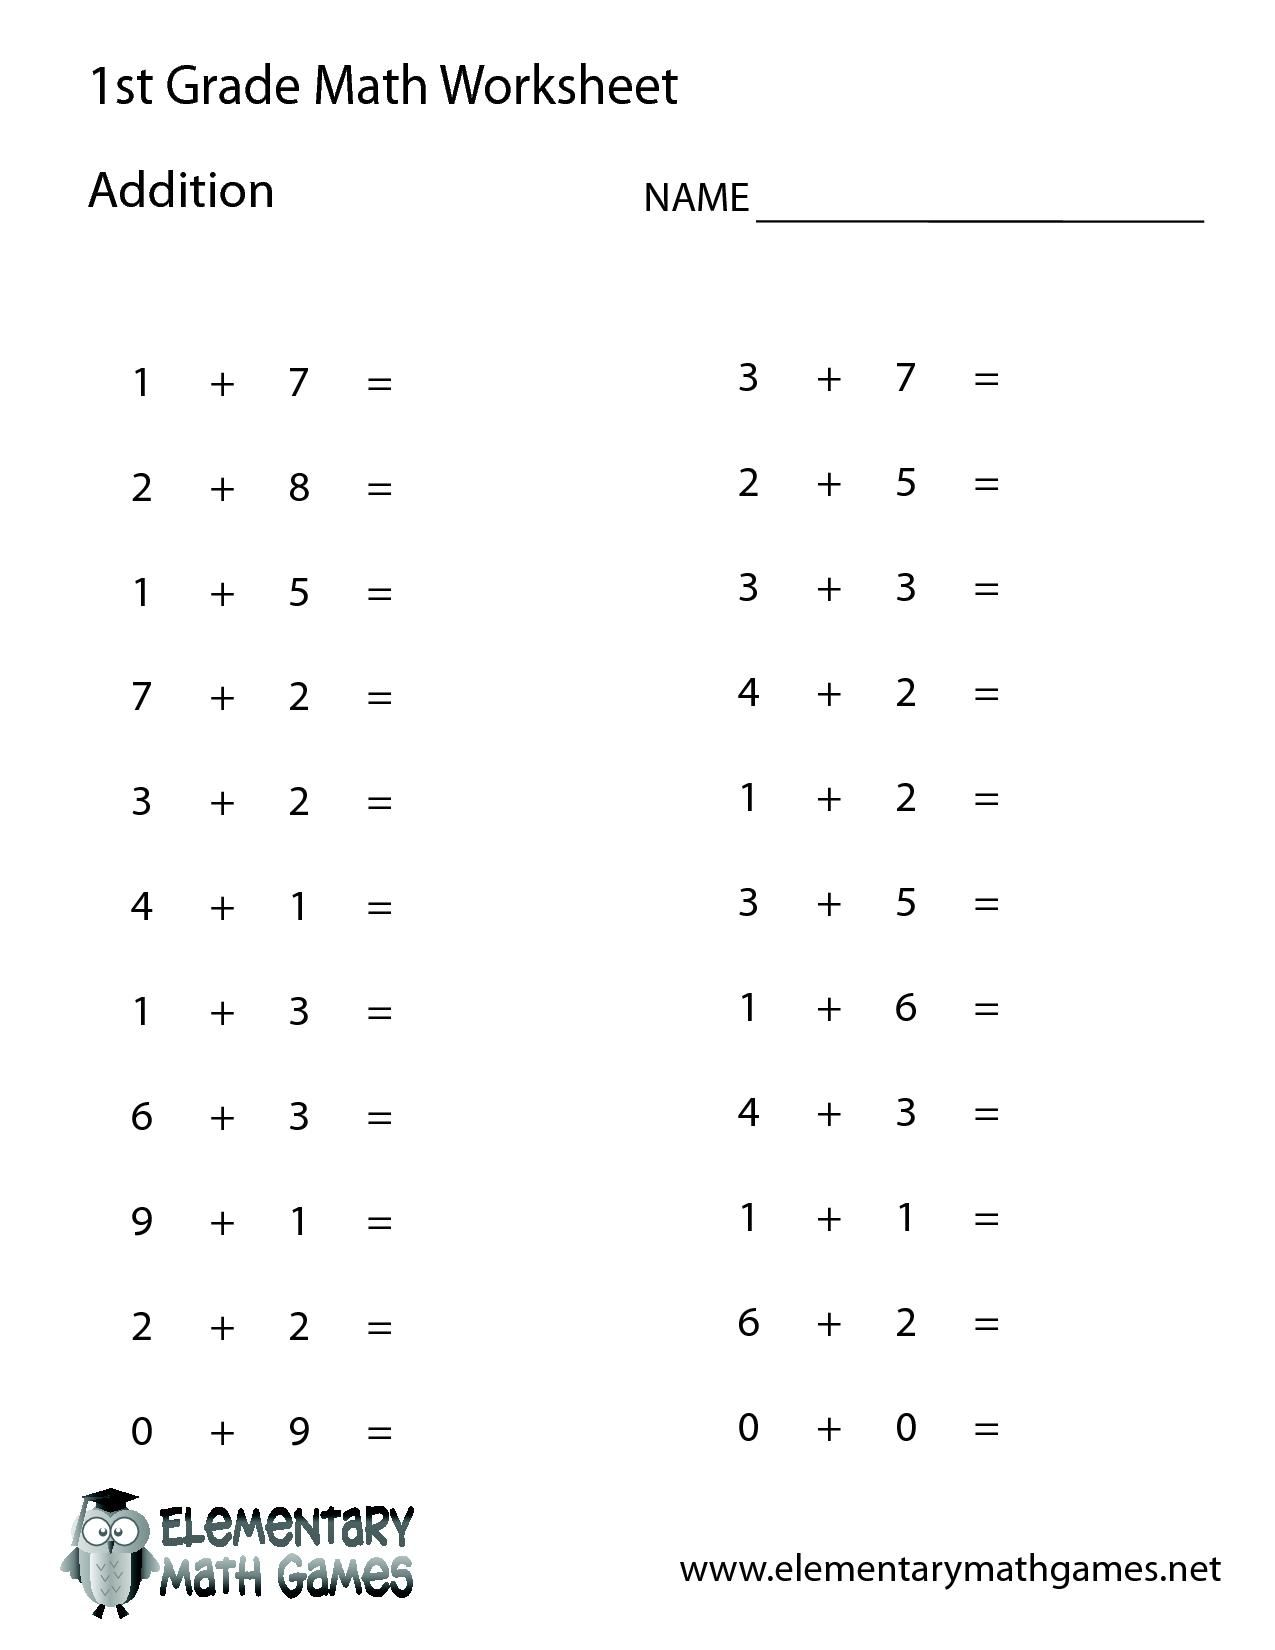 Free Printable Math Addition Worksheets For First Grade In 2020